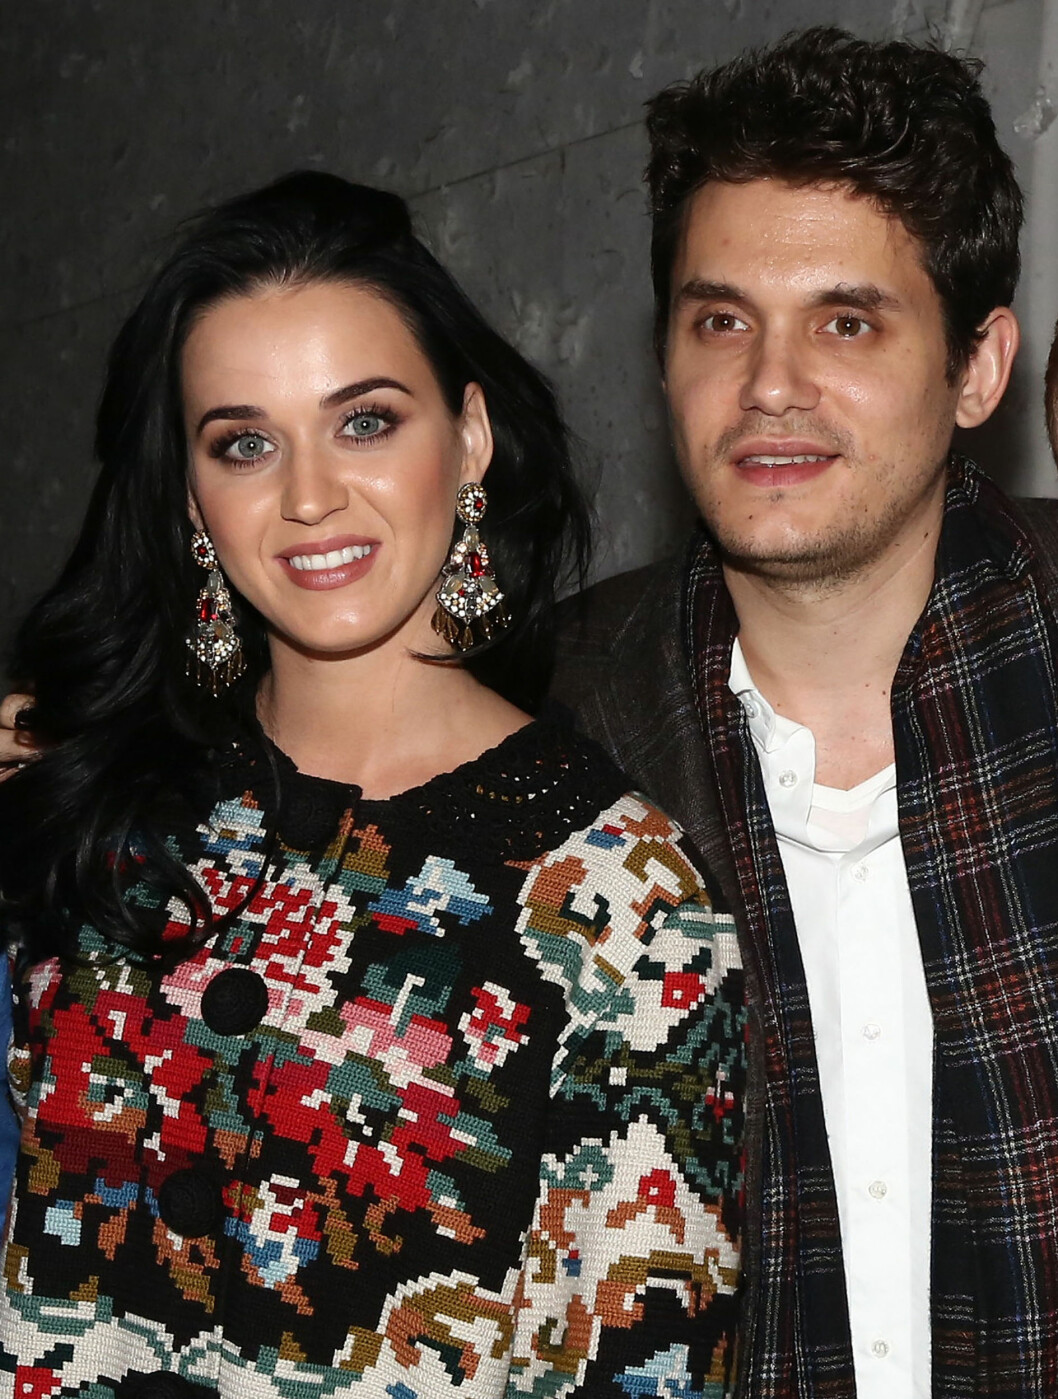 ANGRER?: Katy Perrys ekskjæreste John Mayer må ha angret på brudet når han så Perry den røde løperen til Nickelodeon Kids Choice Awards. Foto: All Over Press